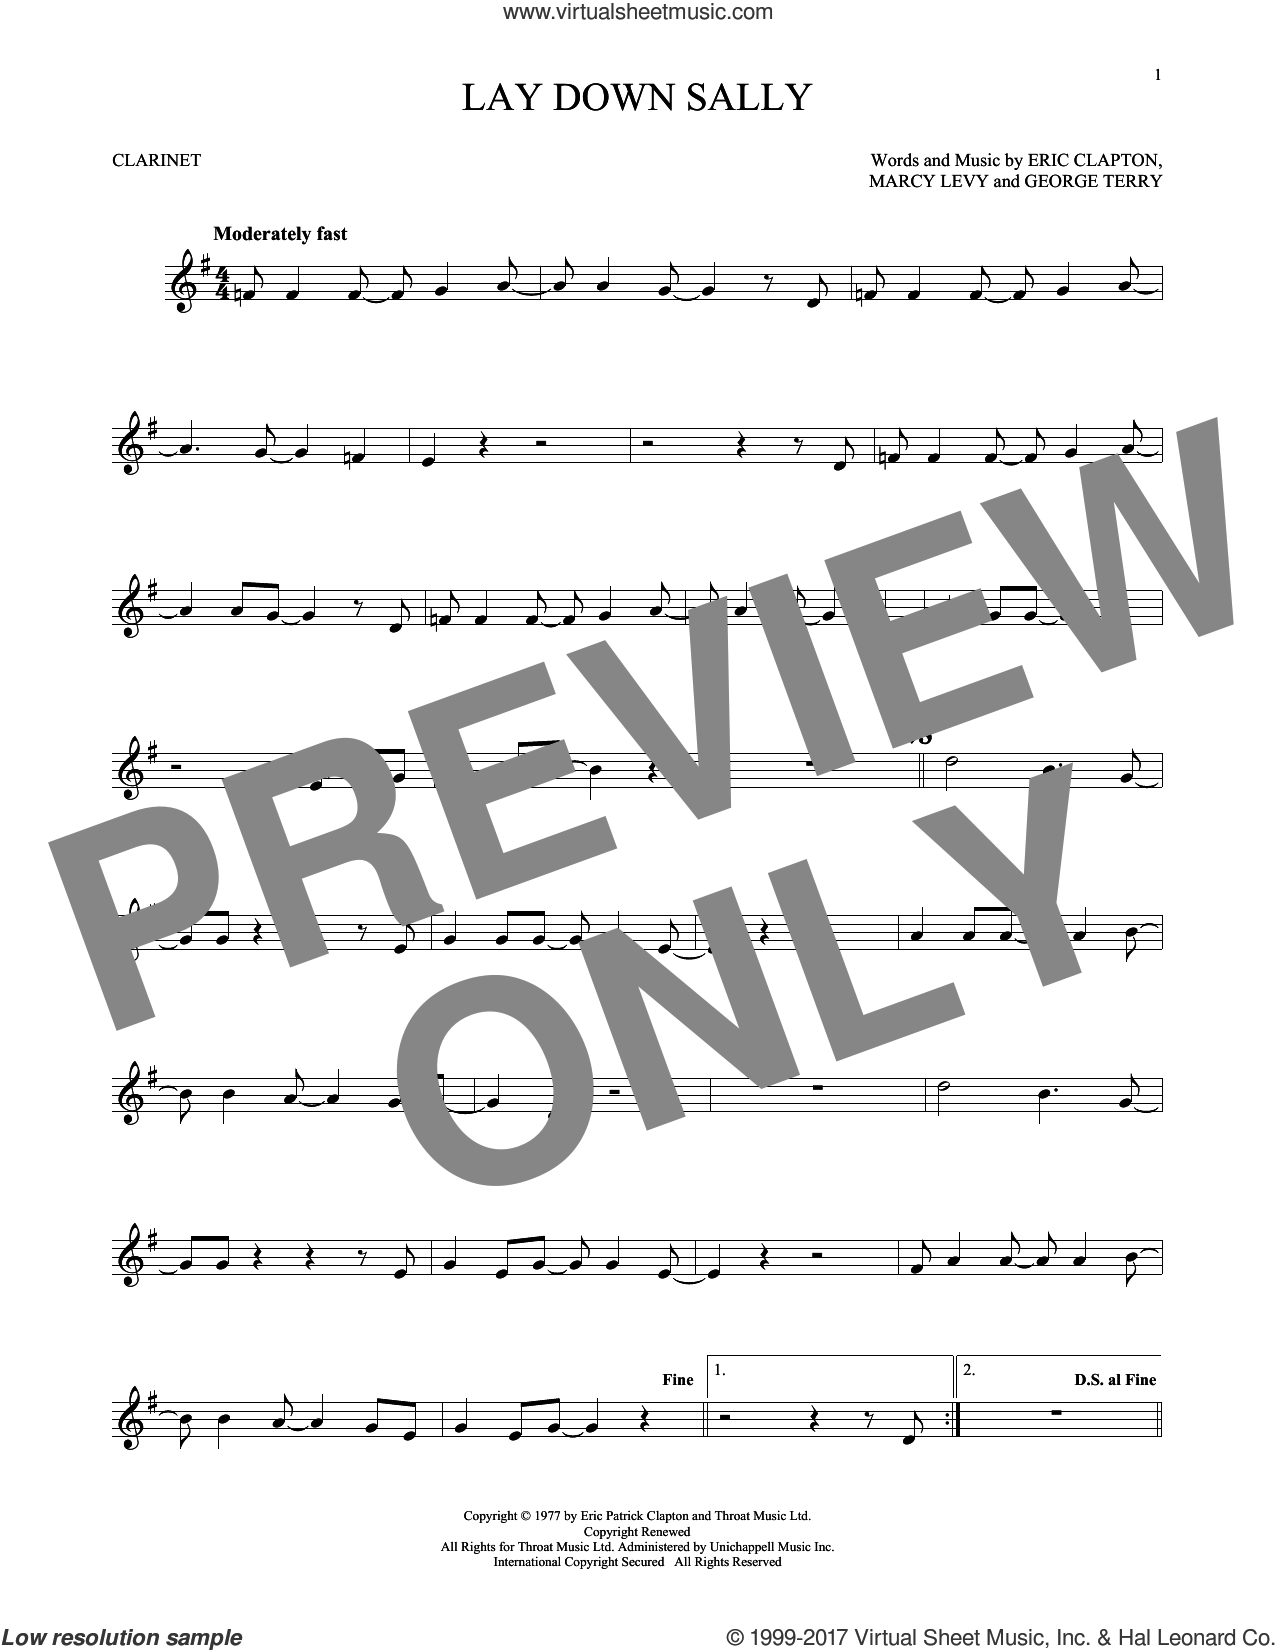 Lay Down Sally sheet music for clarinet solo by Eric Clapton, George Terry and Marcy Levy, intermediate skill level